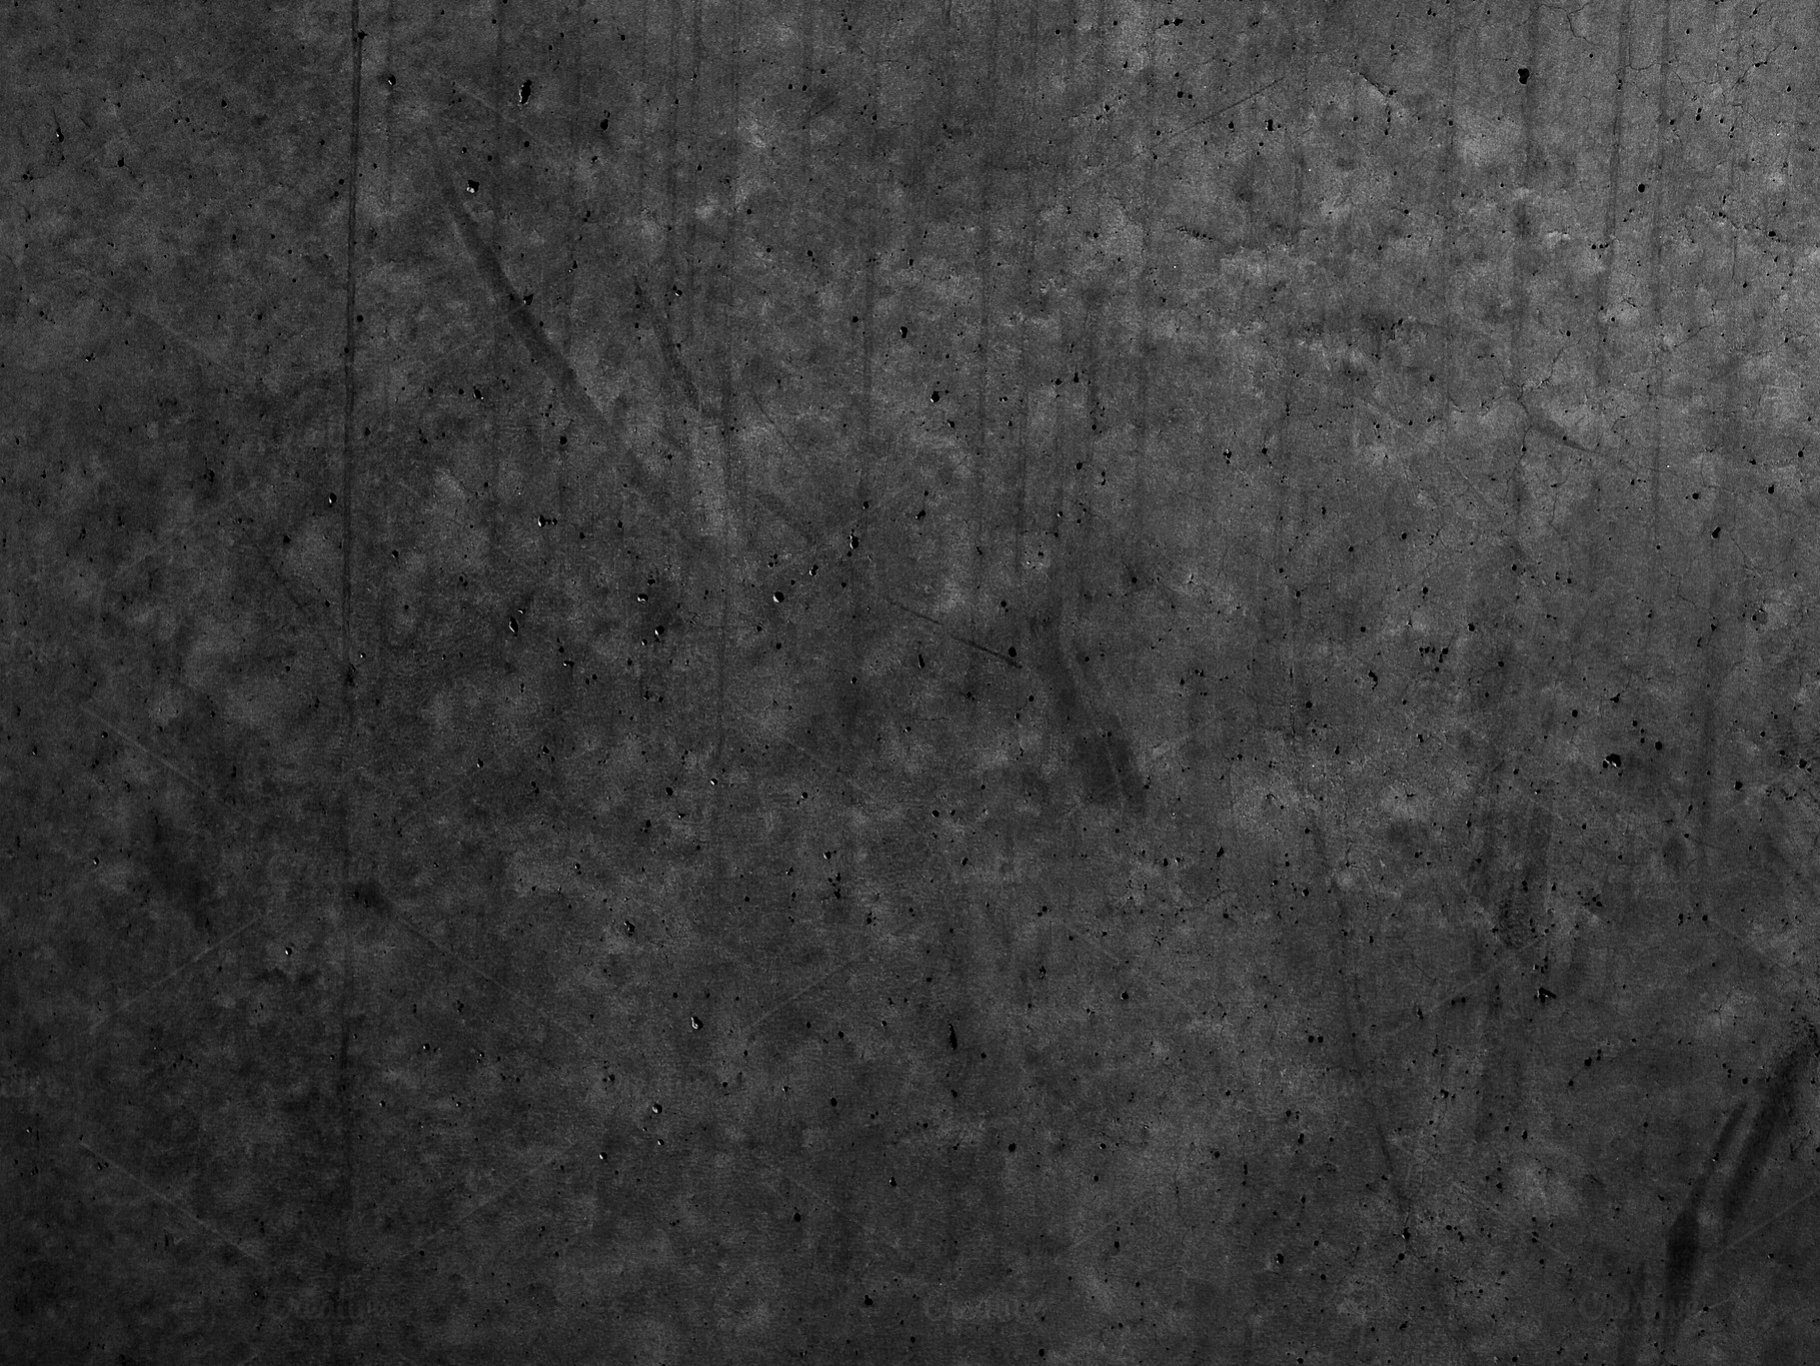 grunge dark grey concrete texture background | High ...